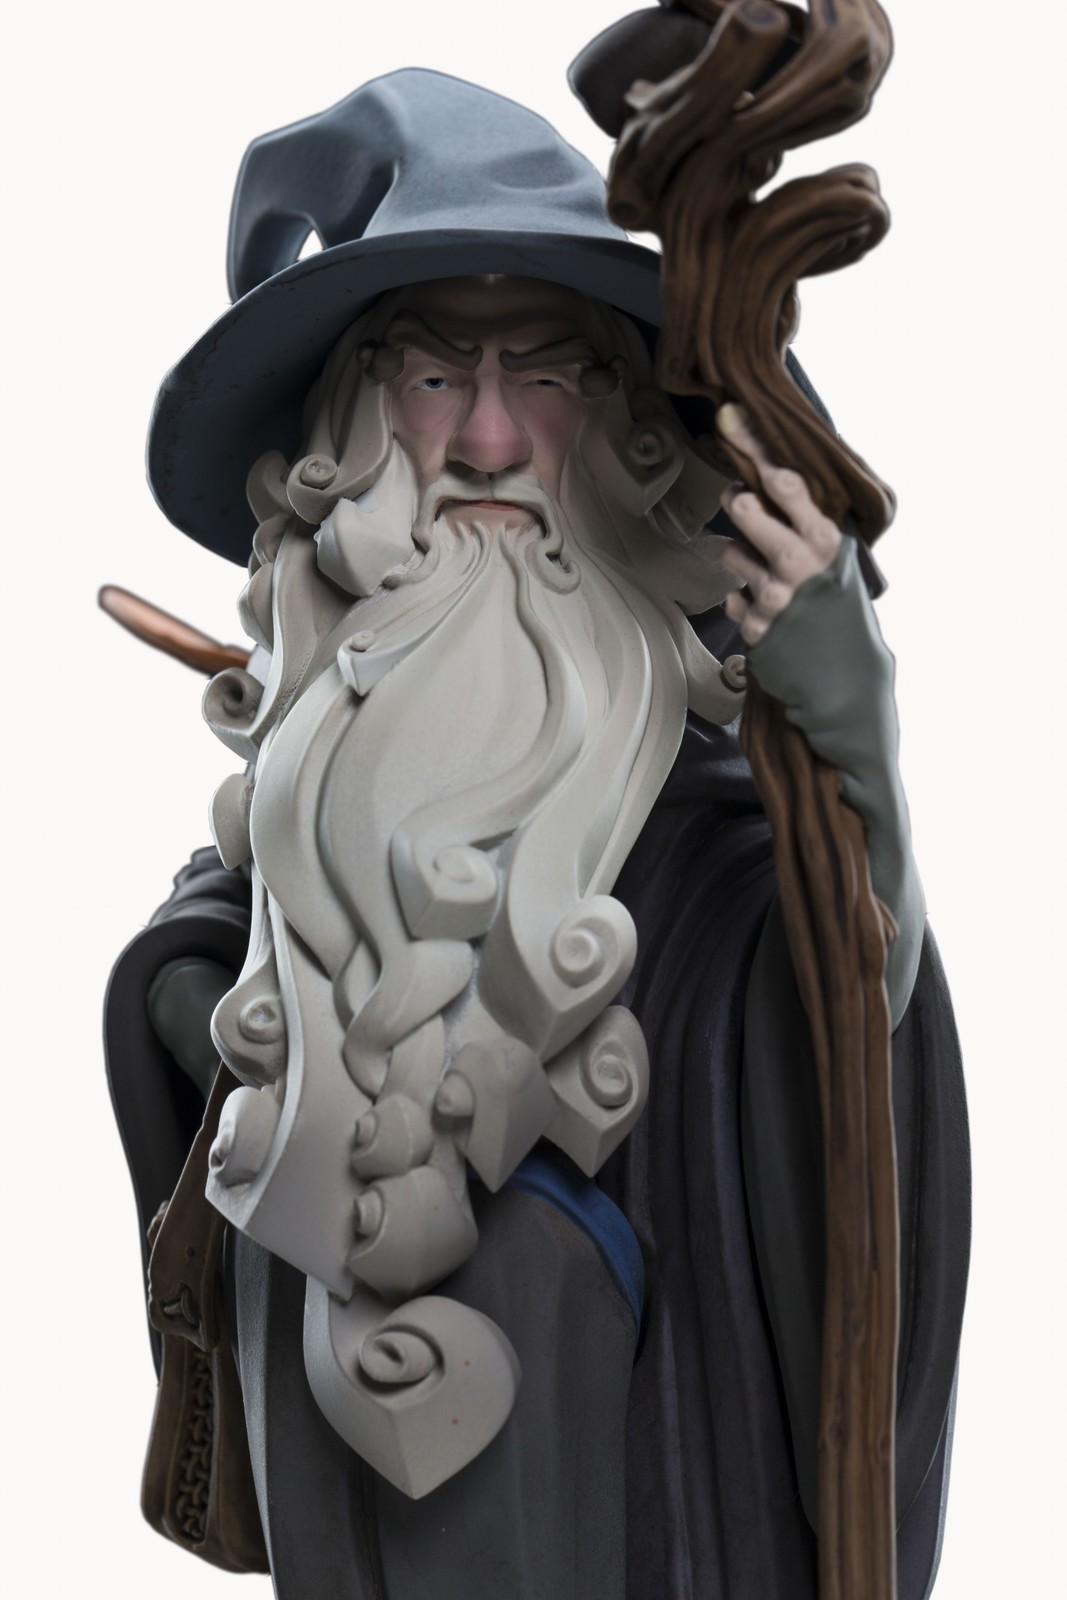 The Lord of the Rings: Mini Epics - Gandalf The Grey image